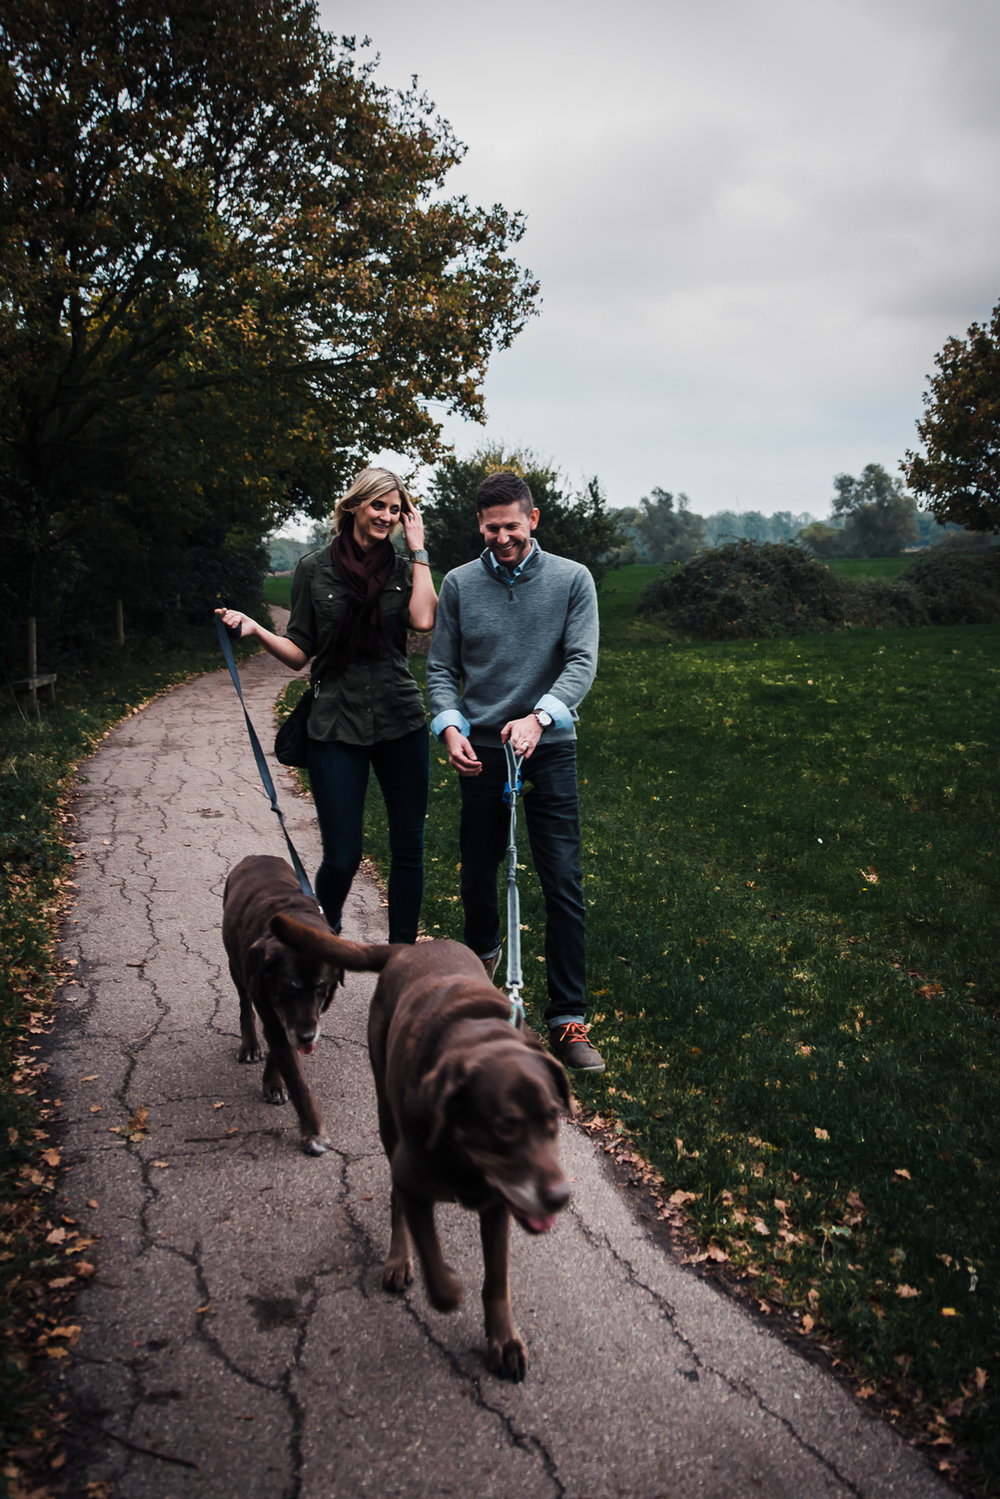 Natural and relaxed portrait of a couple on a dog walk